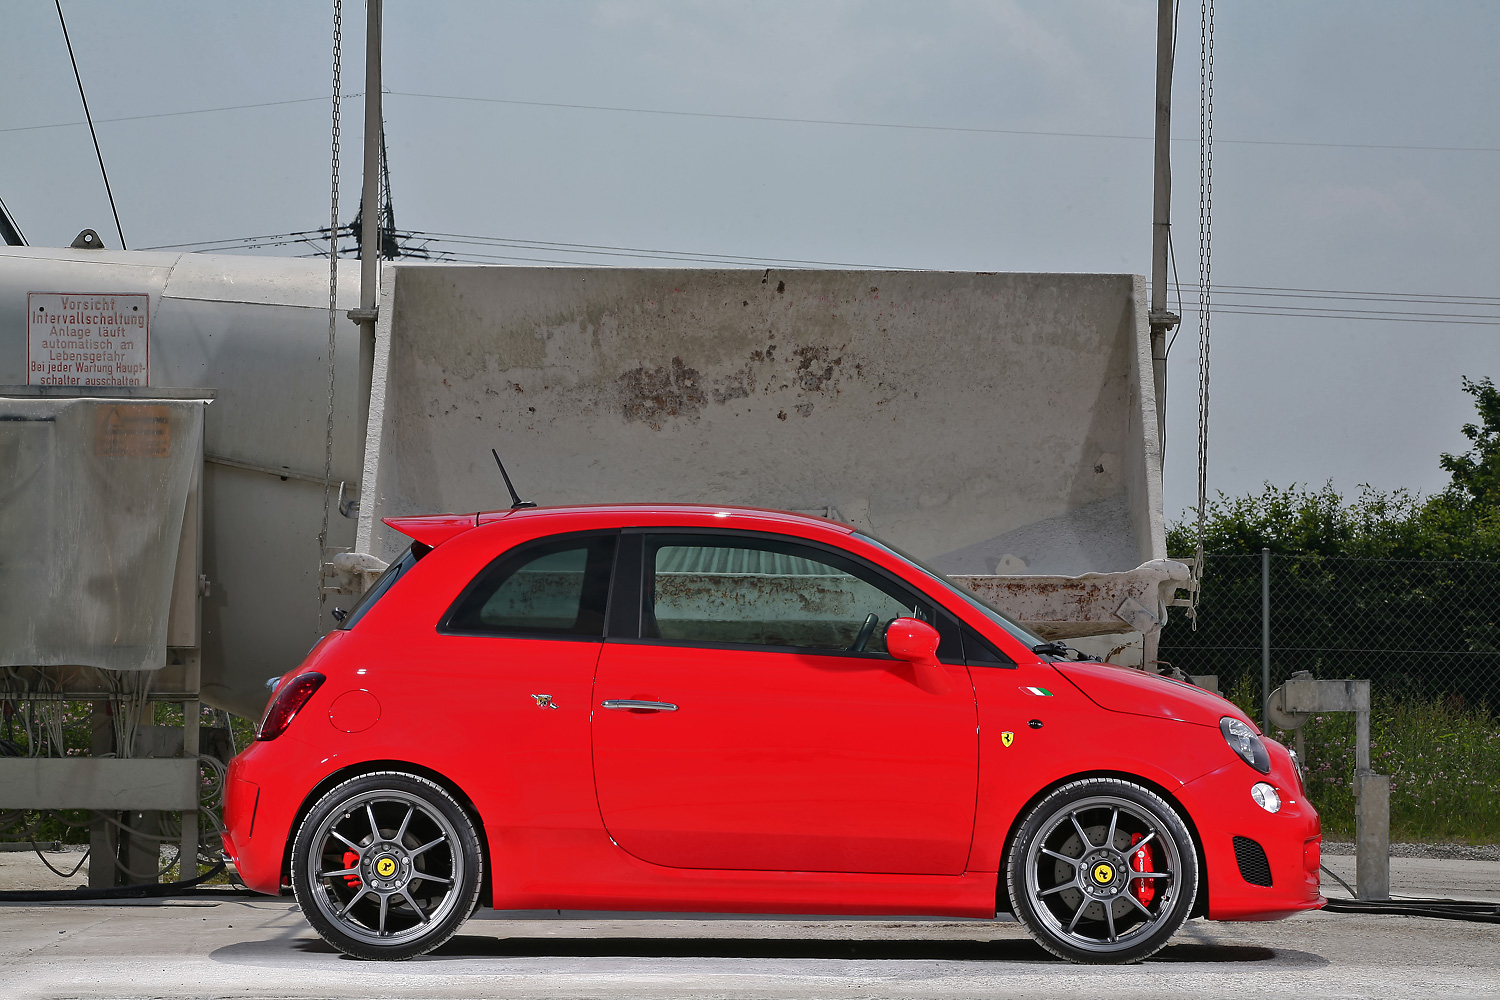 fiat 500 abarth 695 tributo ferrari 268hp homemadeturbo diy turbo forum. Black Bedroom Furniture Sets. Home Design Ideas